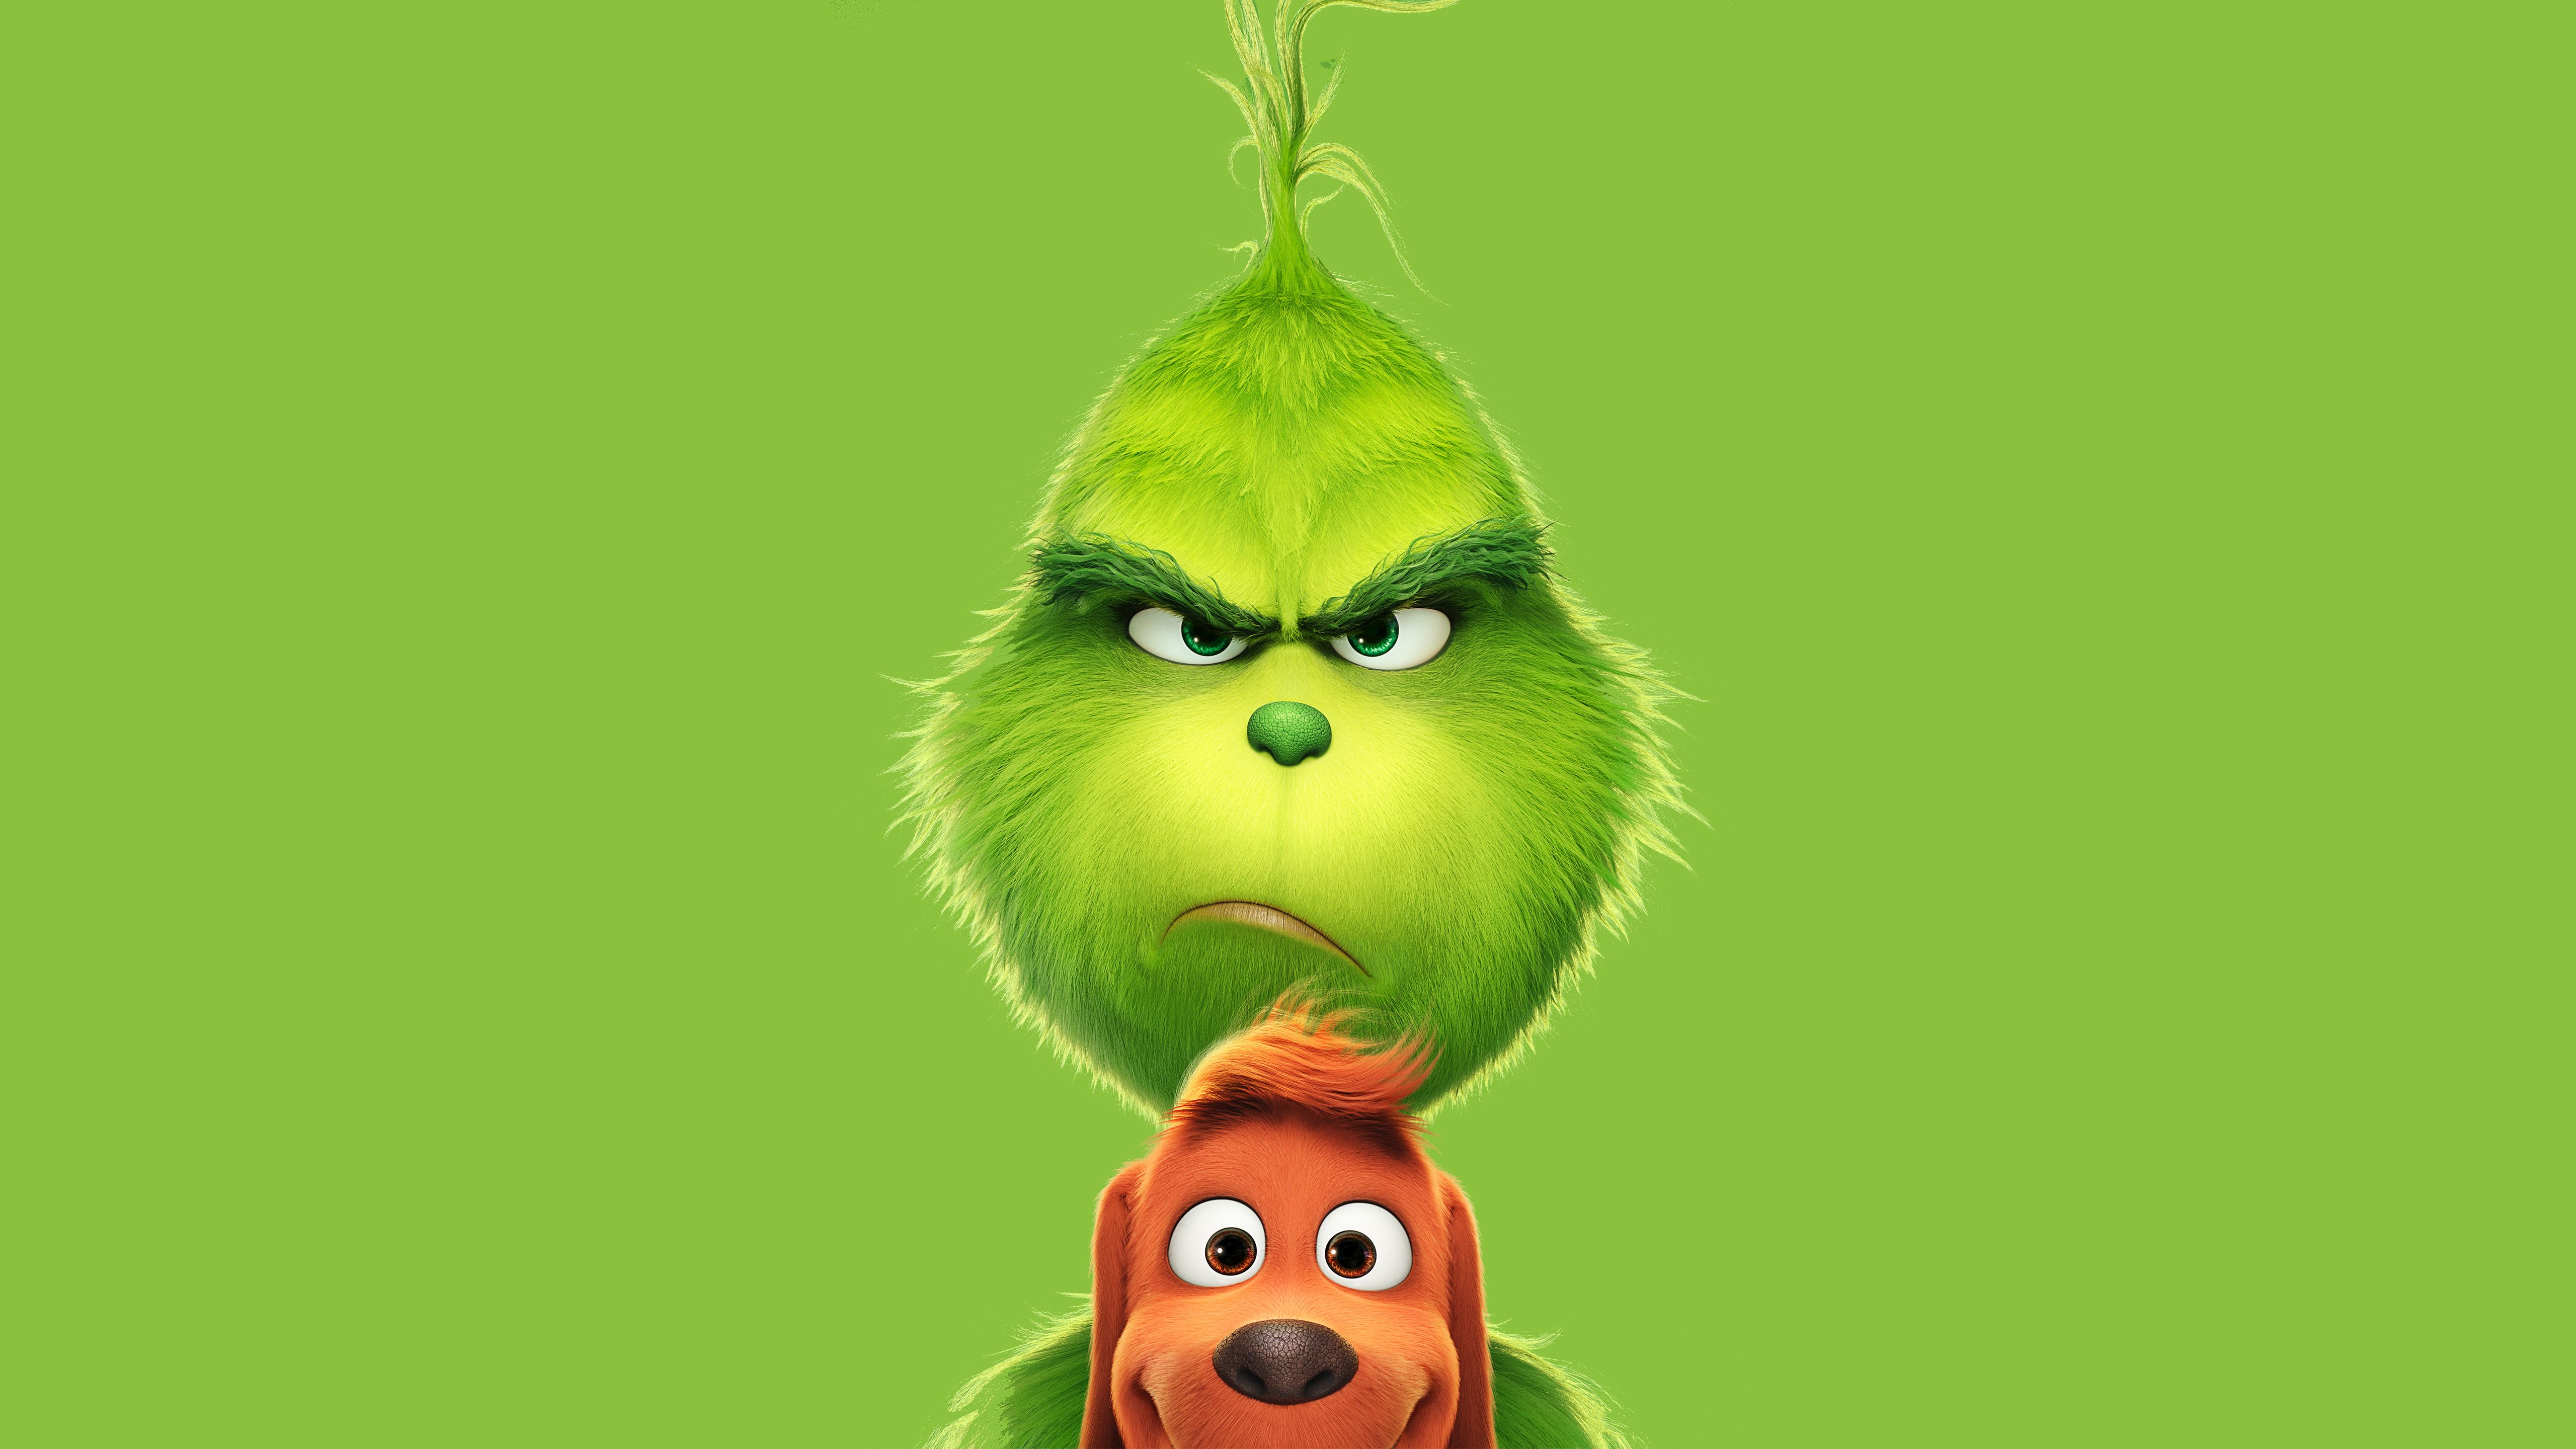 Grinch HD Wallpapers   Top Grinch HD Backgrounds 5120x2880